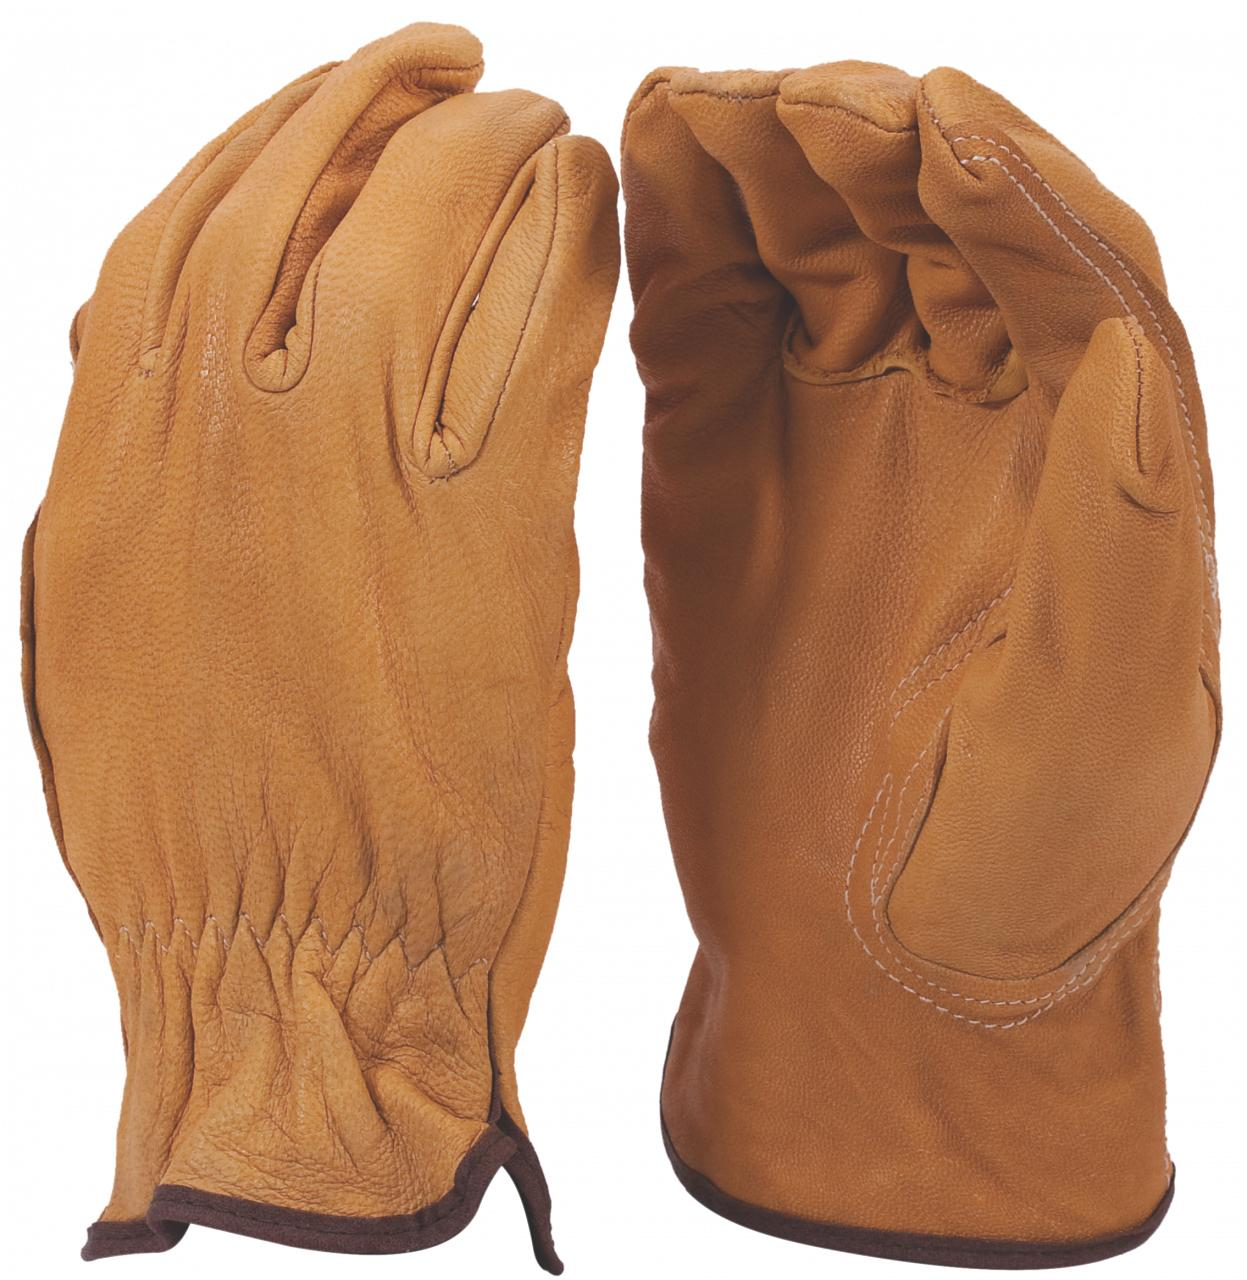 Leather Glove Tig Welding Yellow/Beige